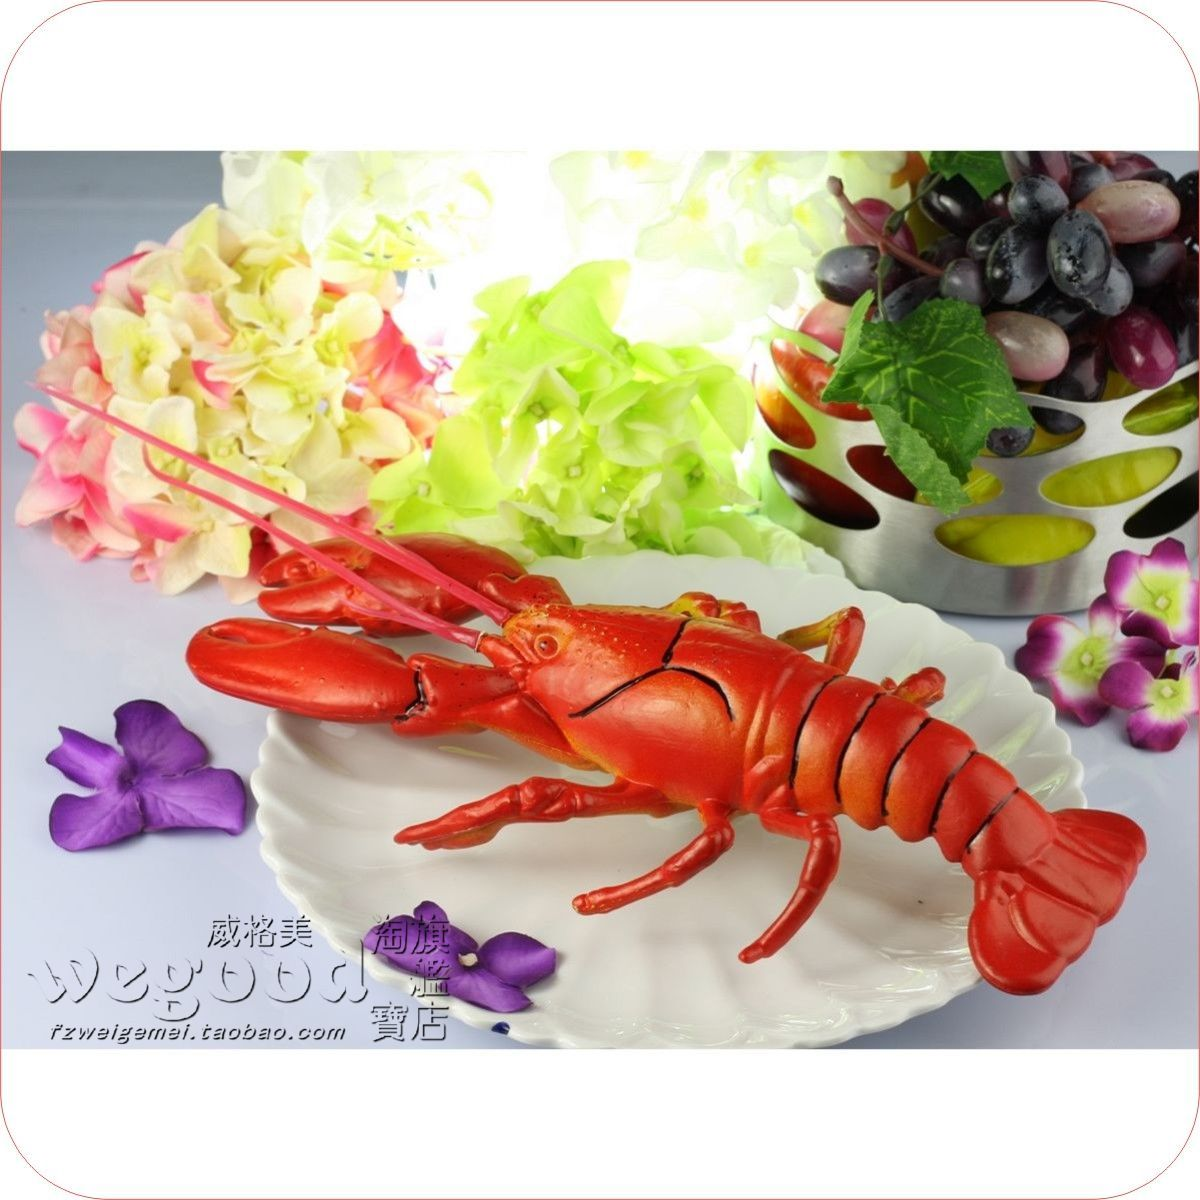 Lobster decorations promotion online shopping for for Animals that are included in the cuisine of seafood